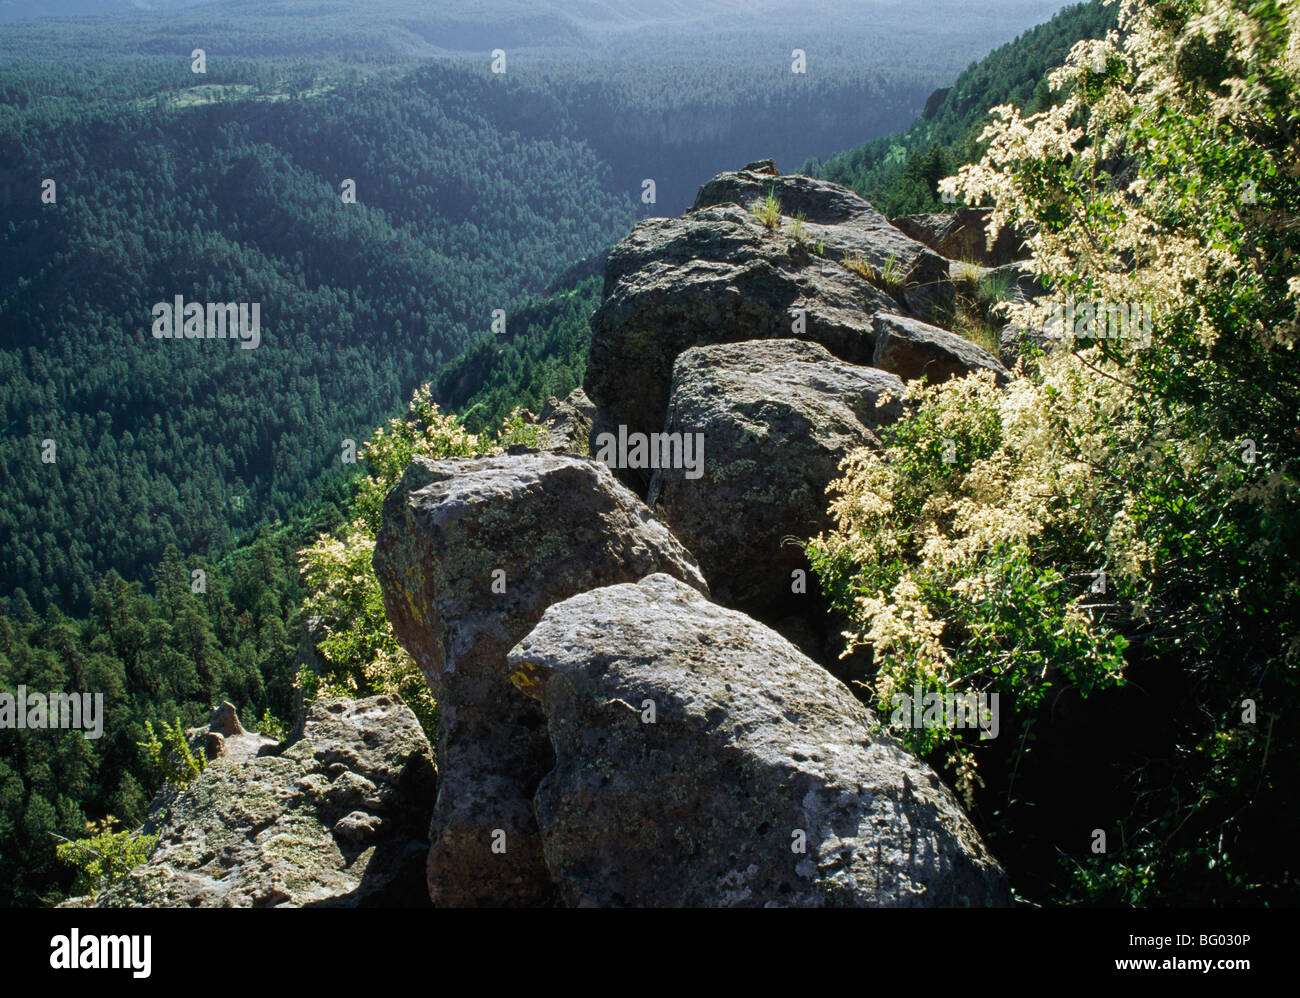 Boulders and flowering mountain spray (Holodiscus dumosus), East Fork Canyon, Jemez National Recreation Area, New - Stock Image